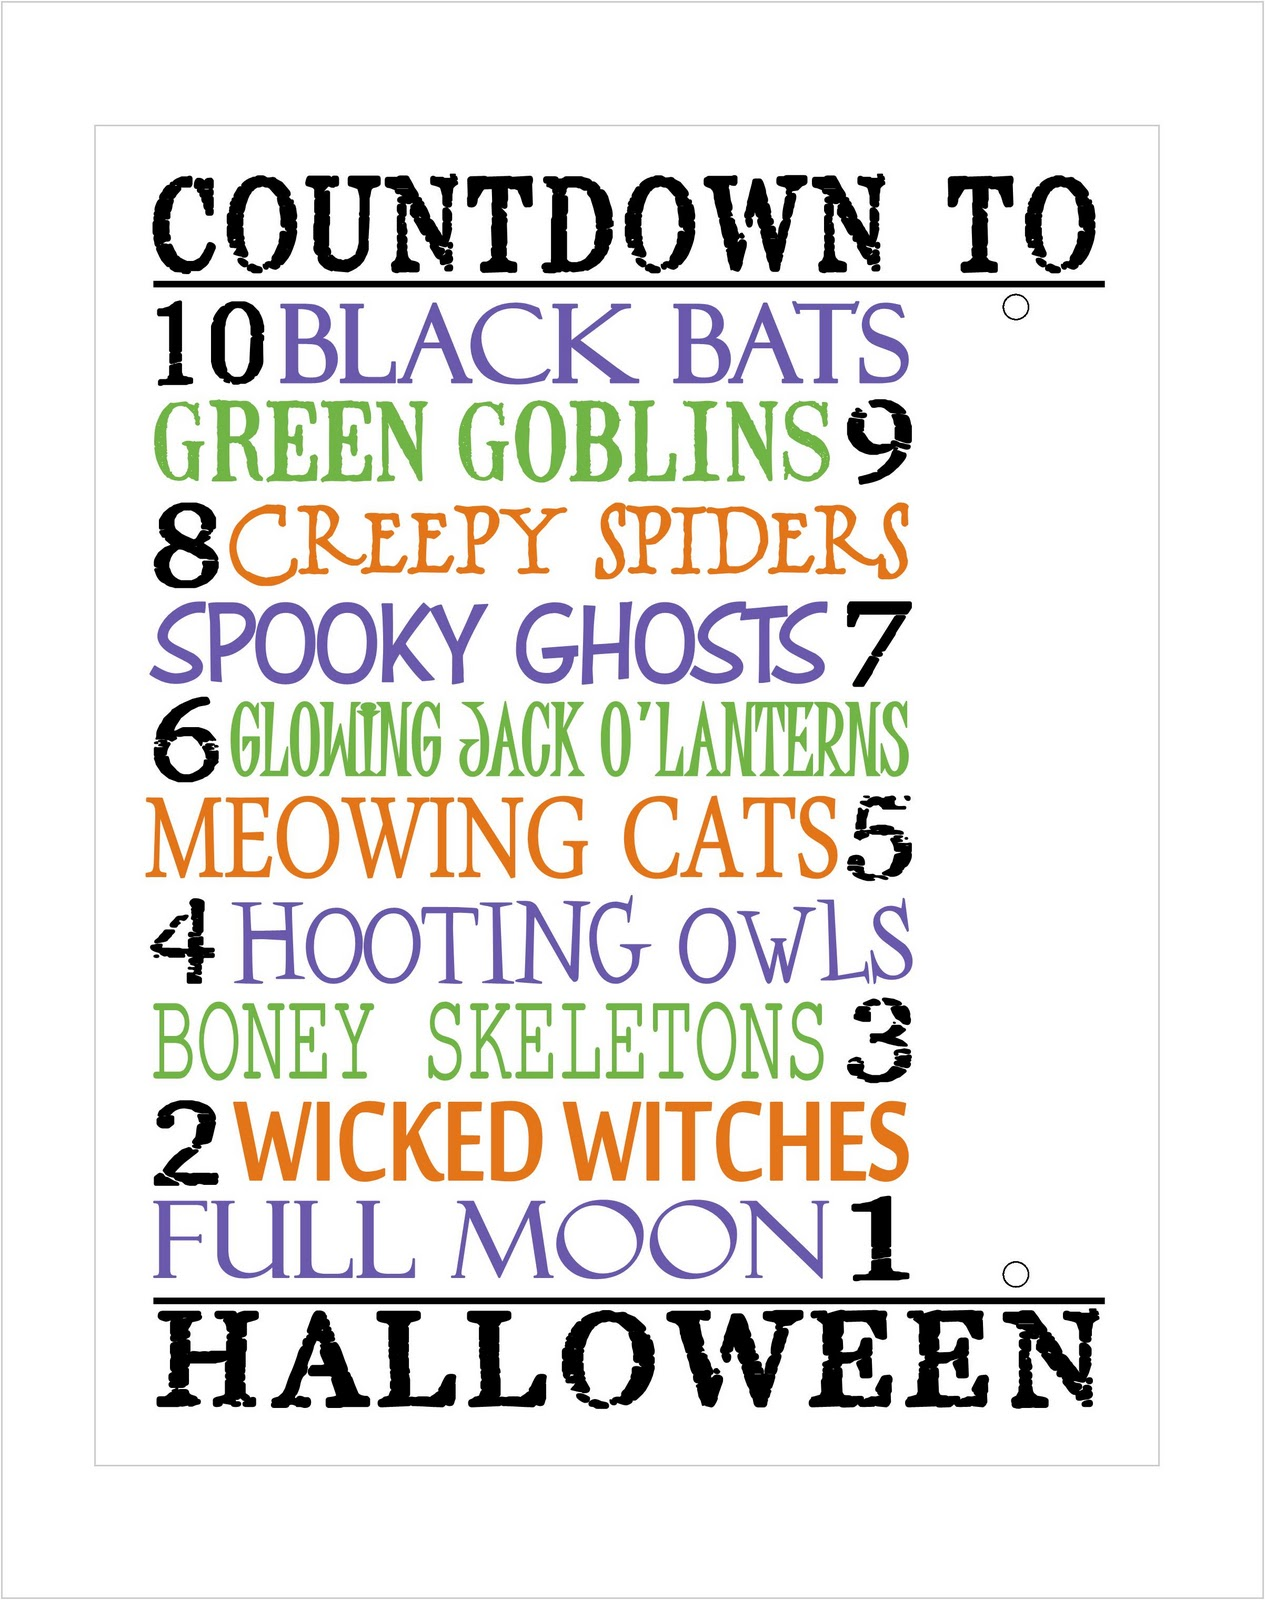 Today's Fabulous Finds: Printable Halloween Countdown